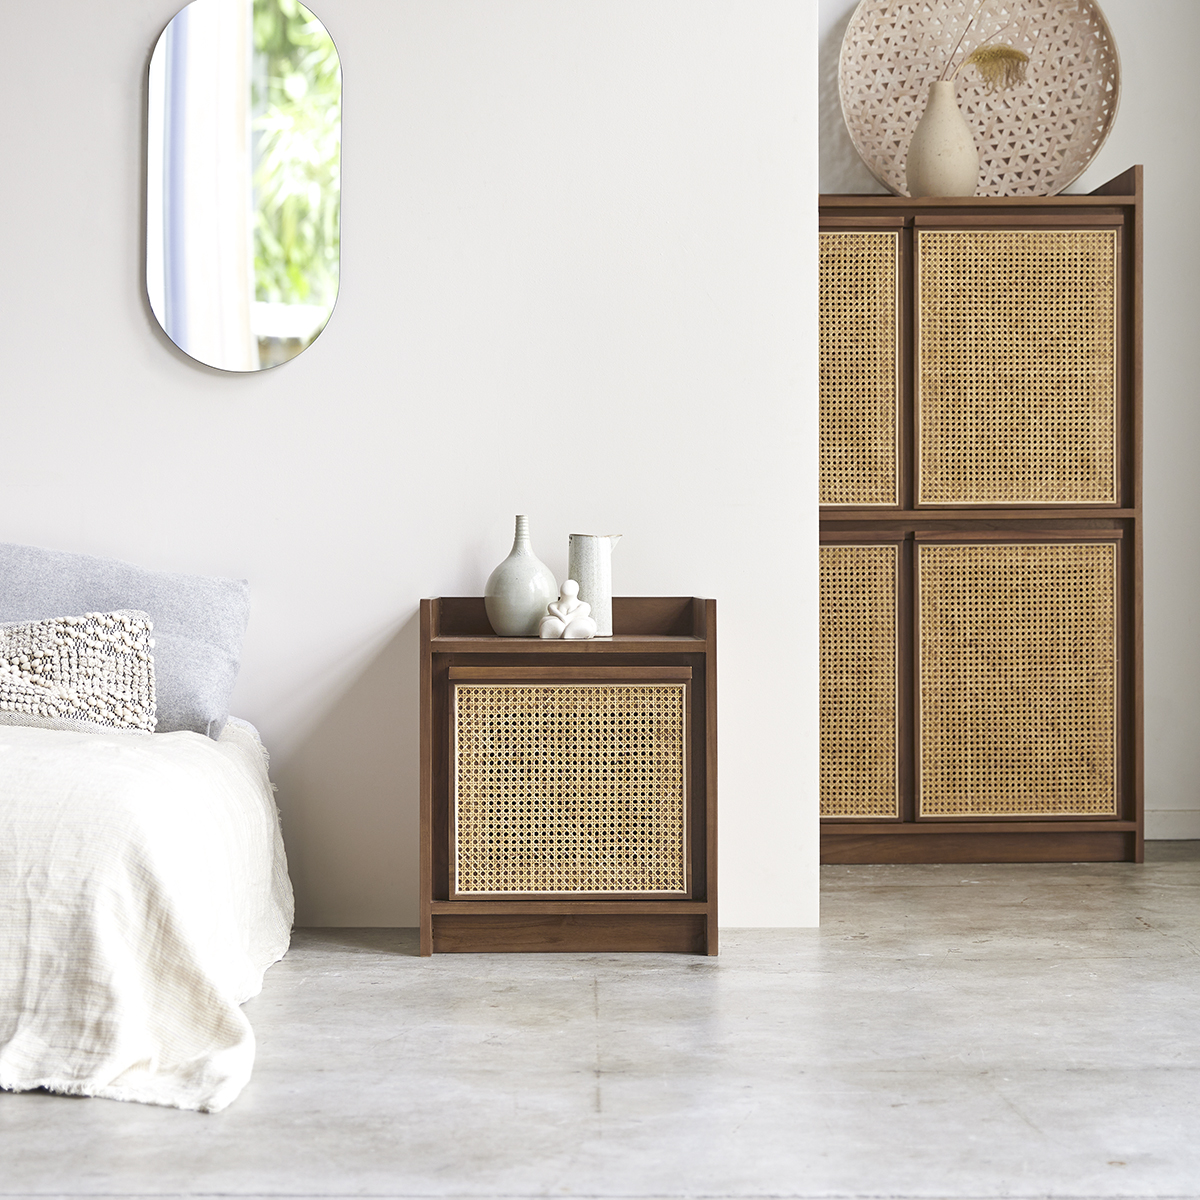 Roots solid teak and canework Bedside table